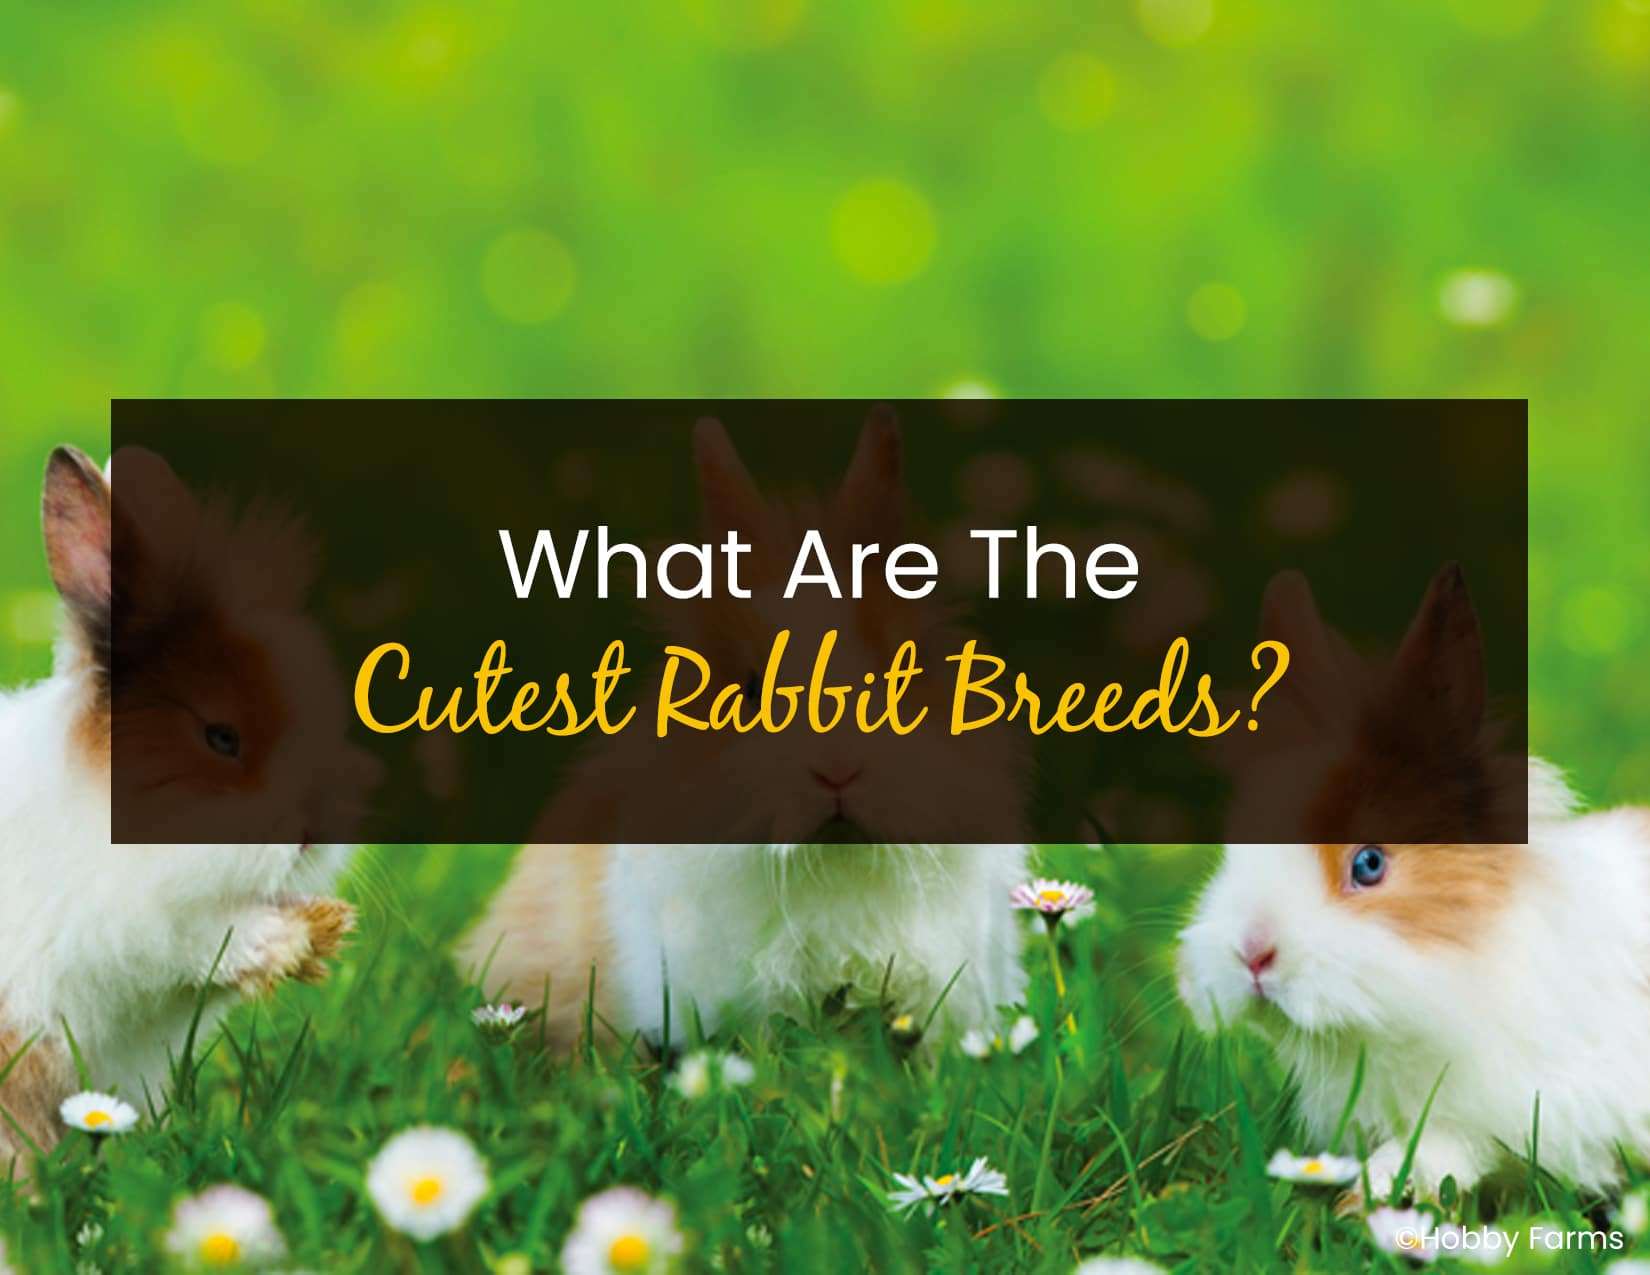 What Are The Cutest Rabbit Breeds